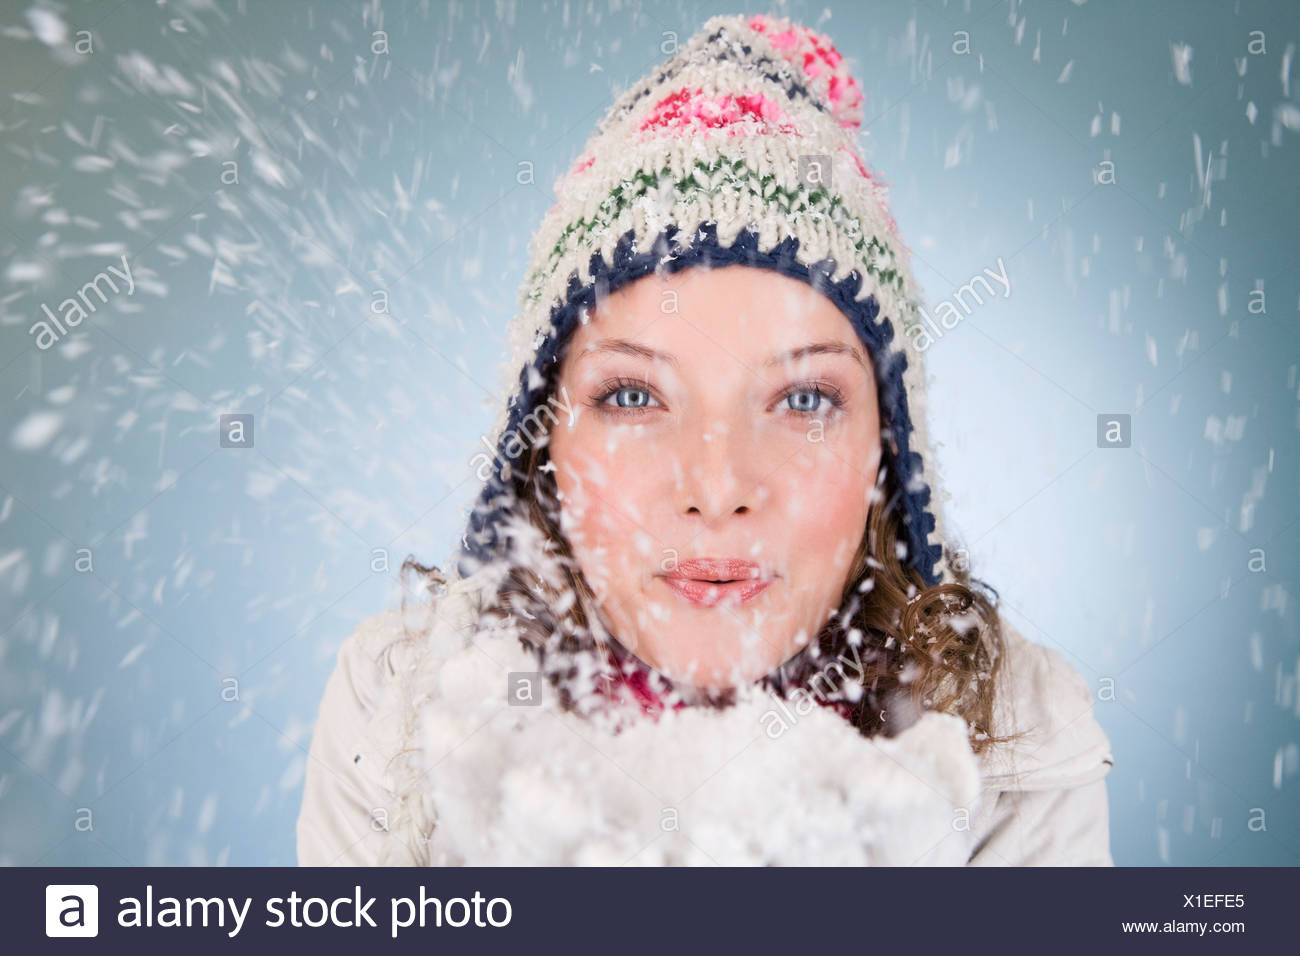 2489df36d15b3 Young Woman Blowing Snow Stock Photos   Young Woman Blowing Snow ...